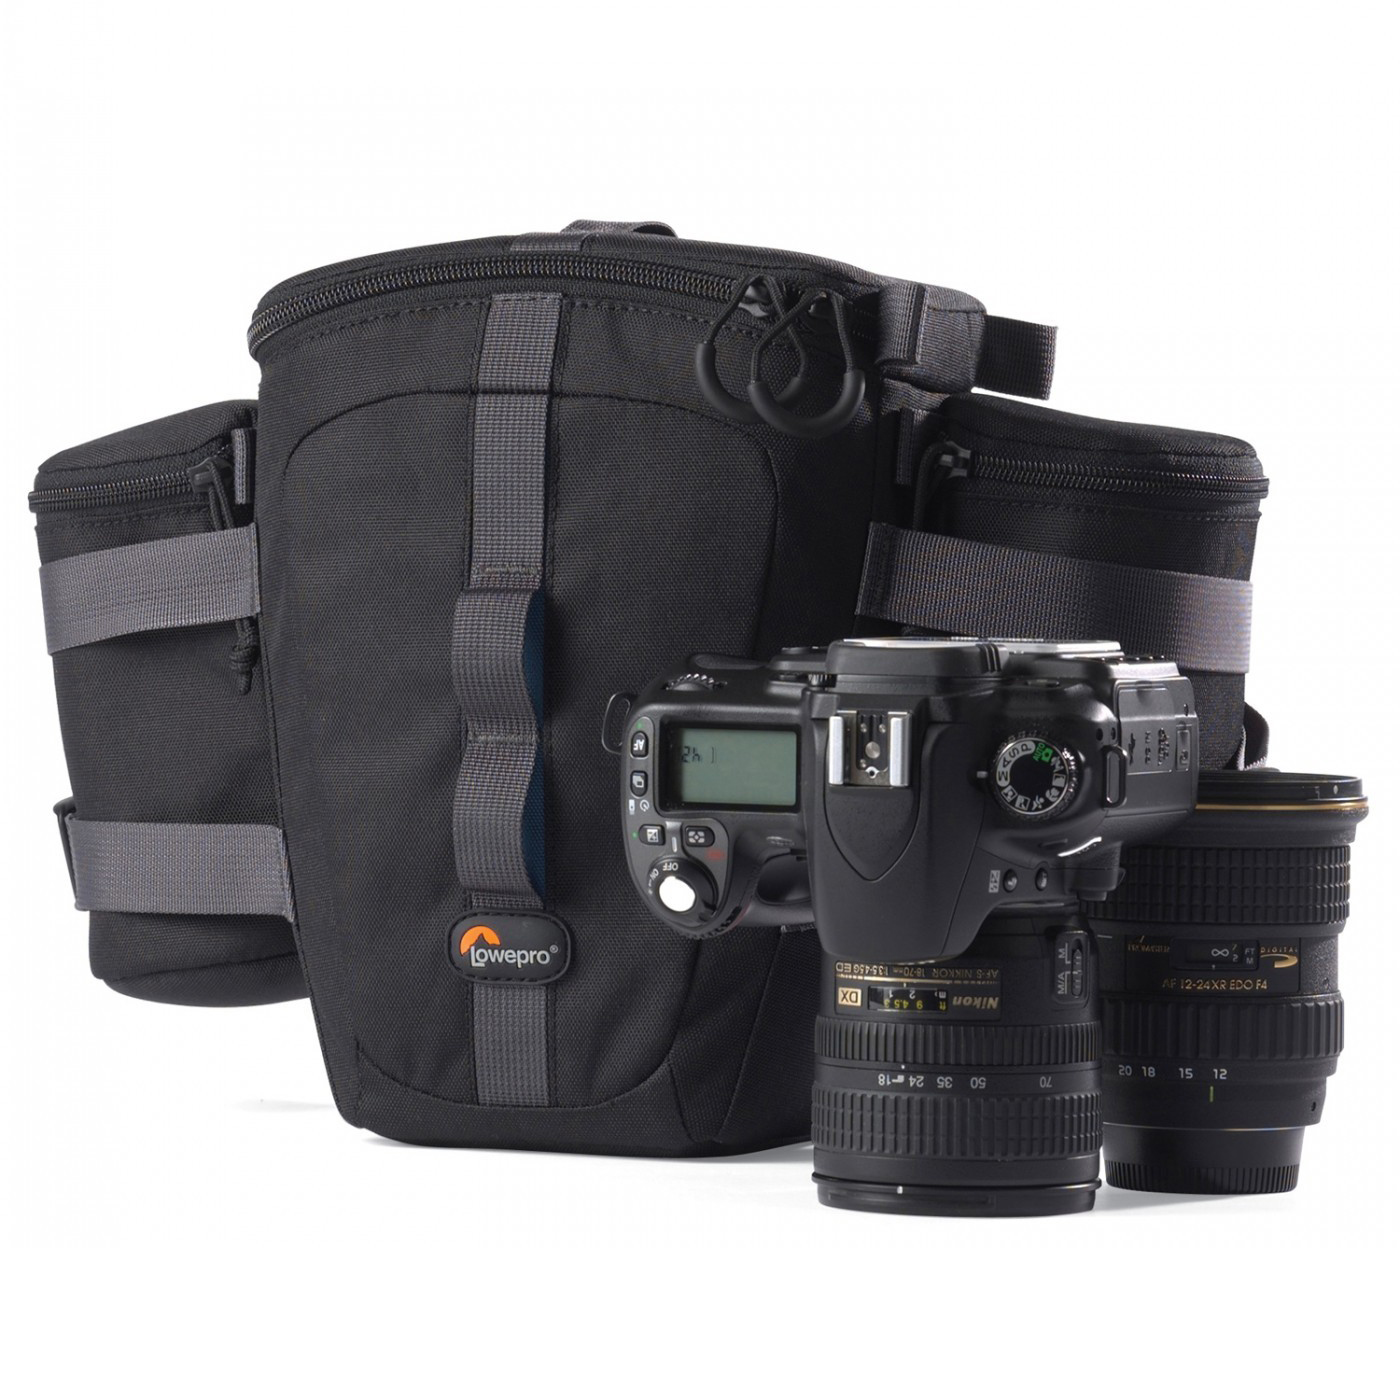 LowePro Outback 200 Camera Bag